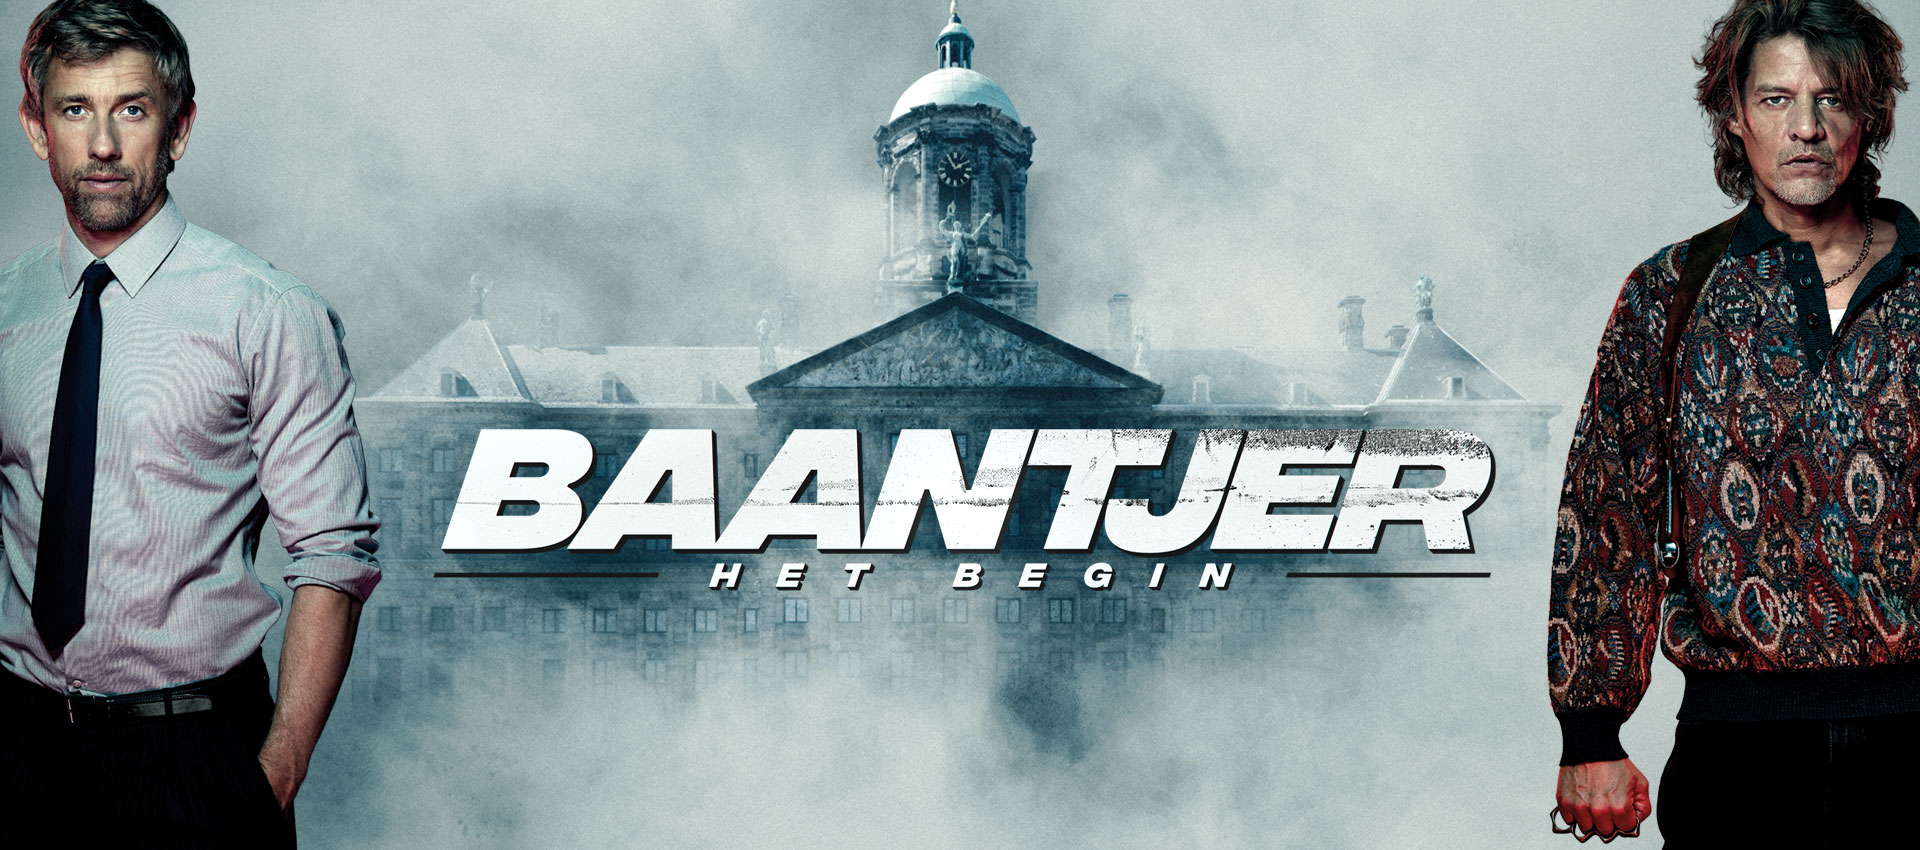 Film Baantjer - Het Begin